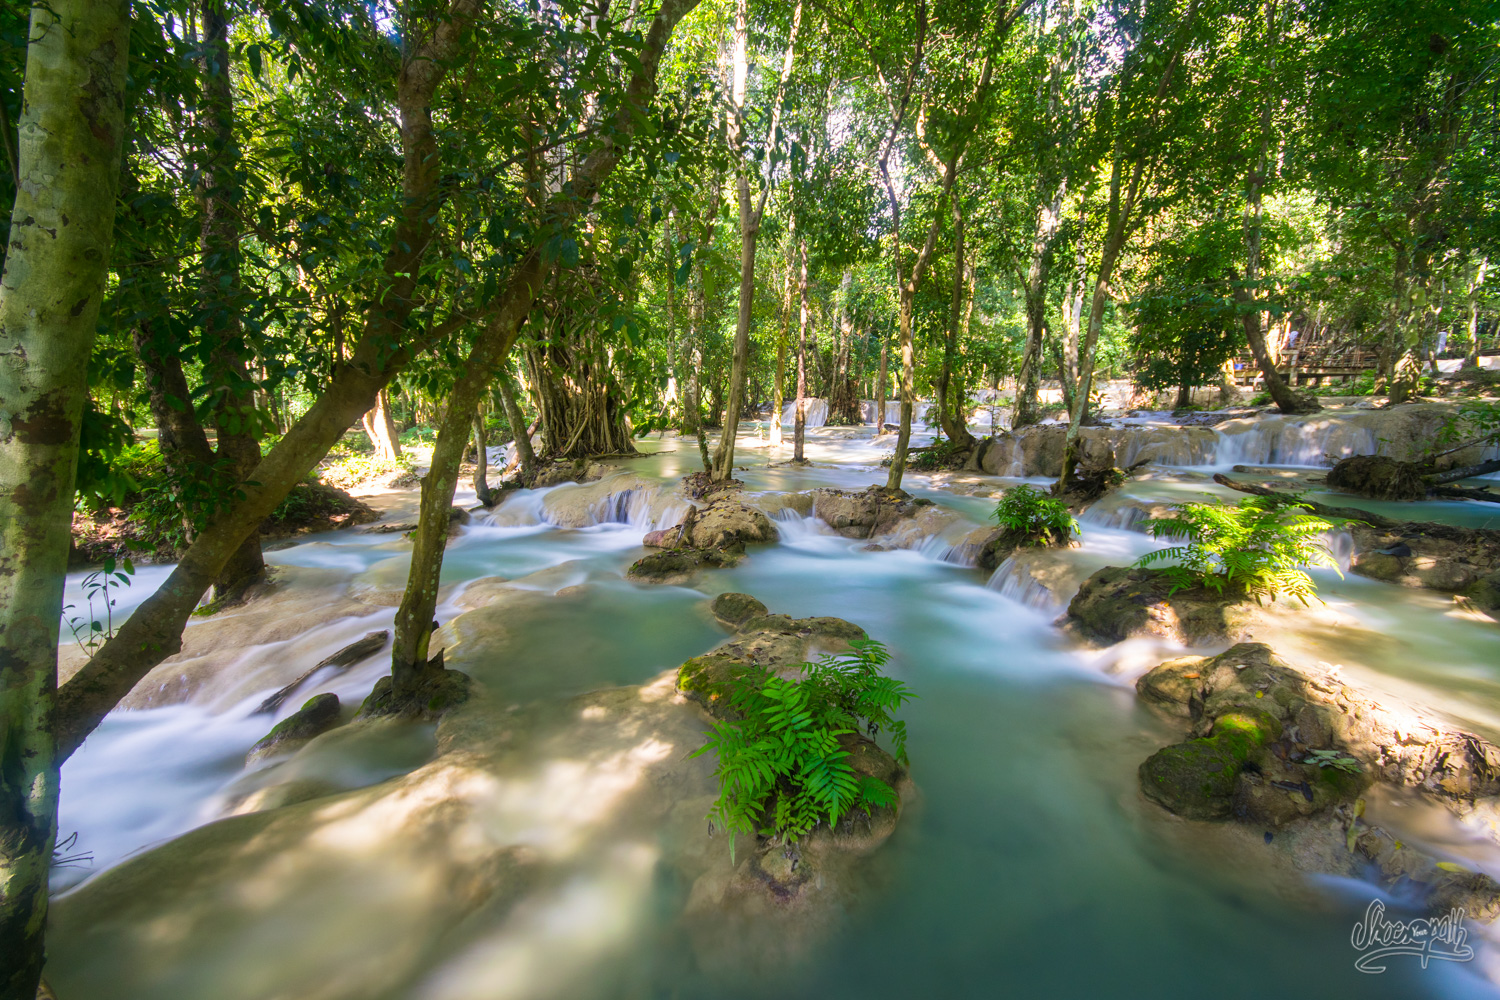 Tad Sae waterfalls, away from the tourists platforms, in the forest